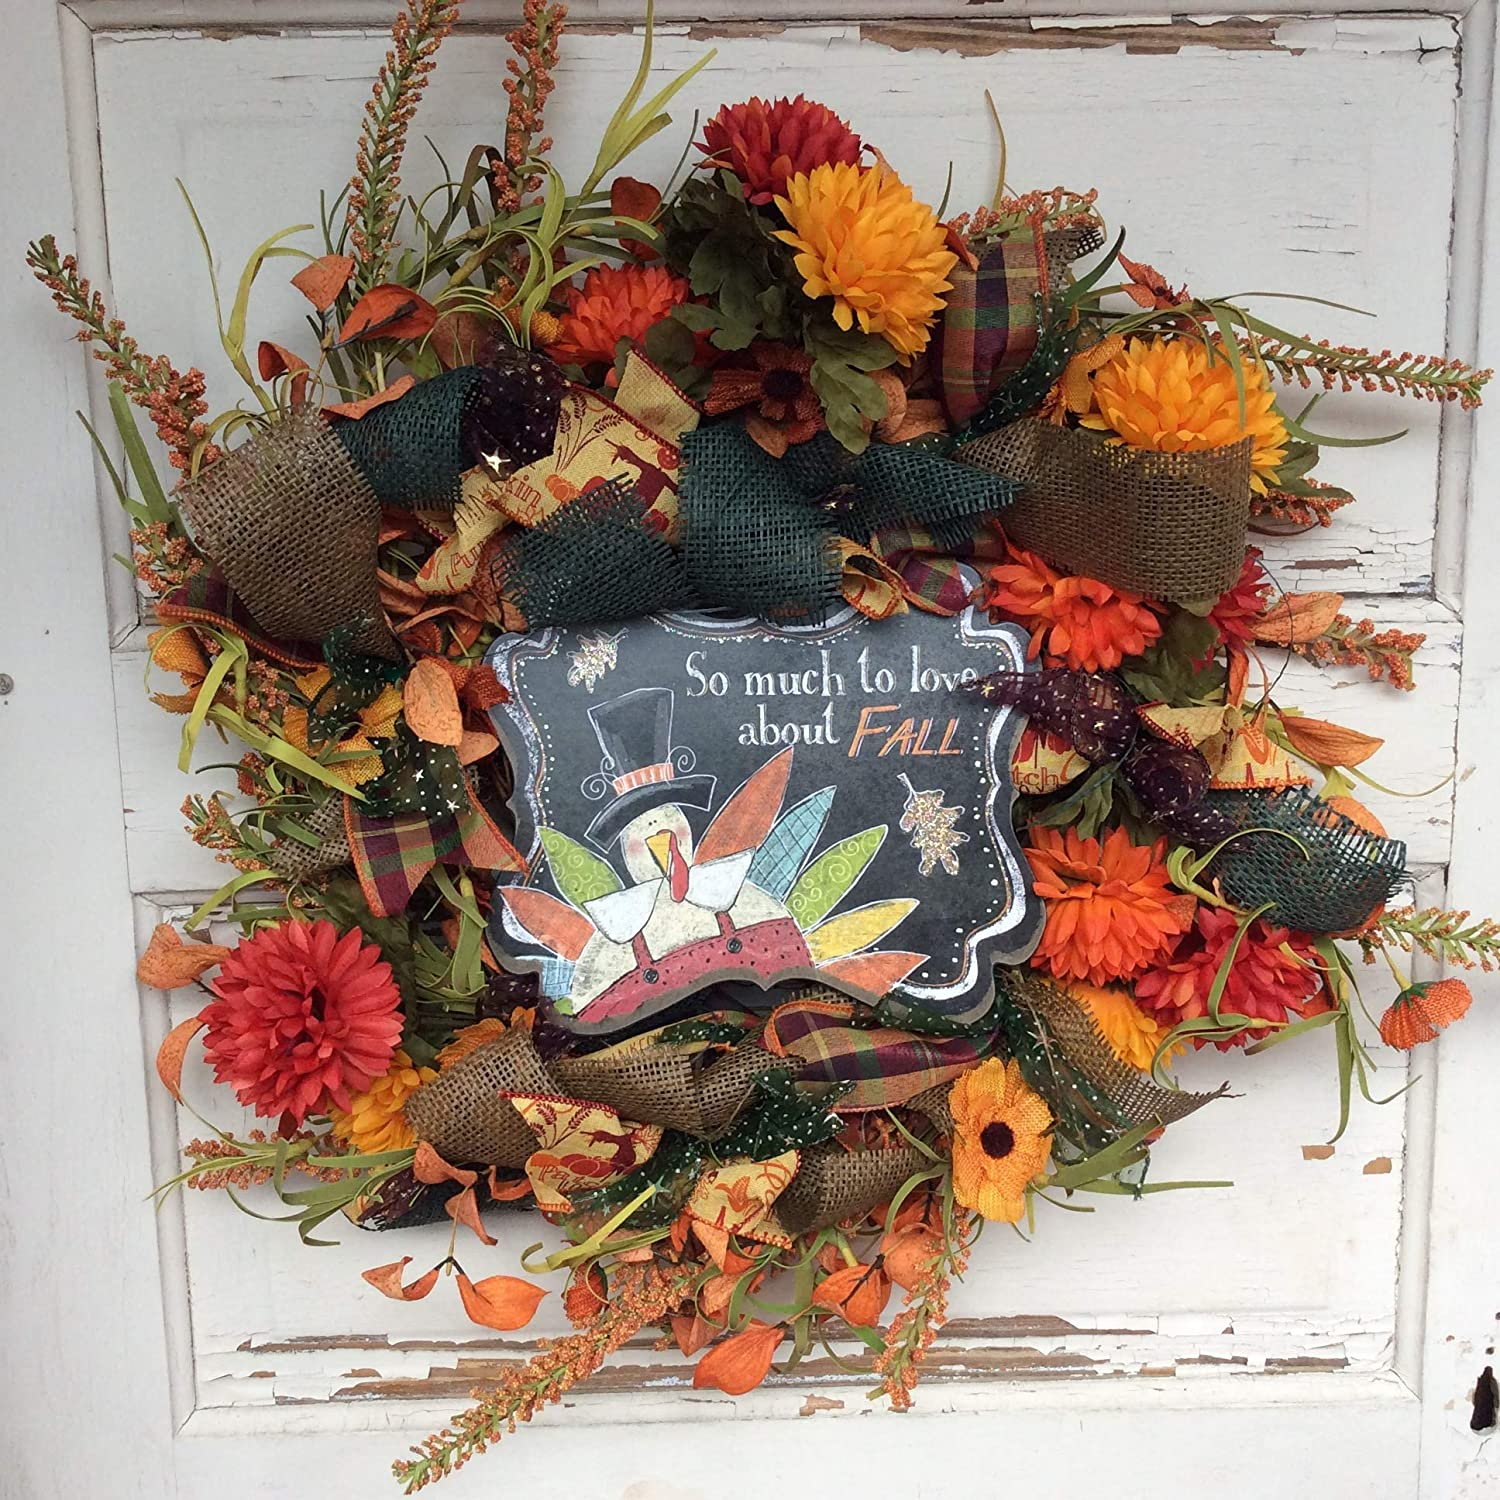 AG Designs Fall Harvest Decor Love Clearance SALE Limited time Mum Wreath discount -